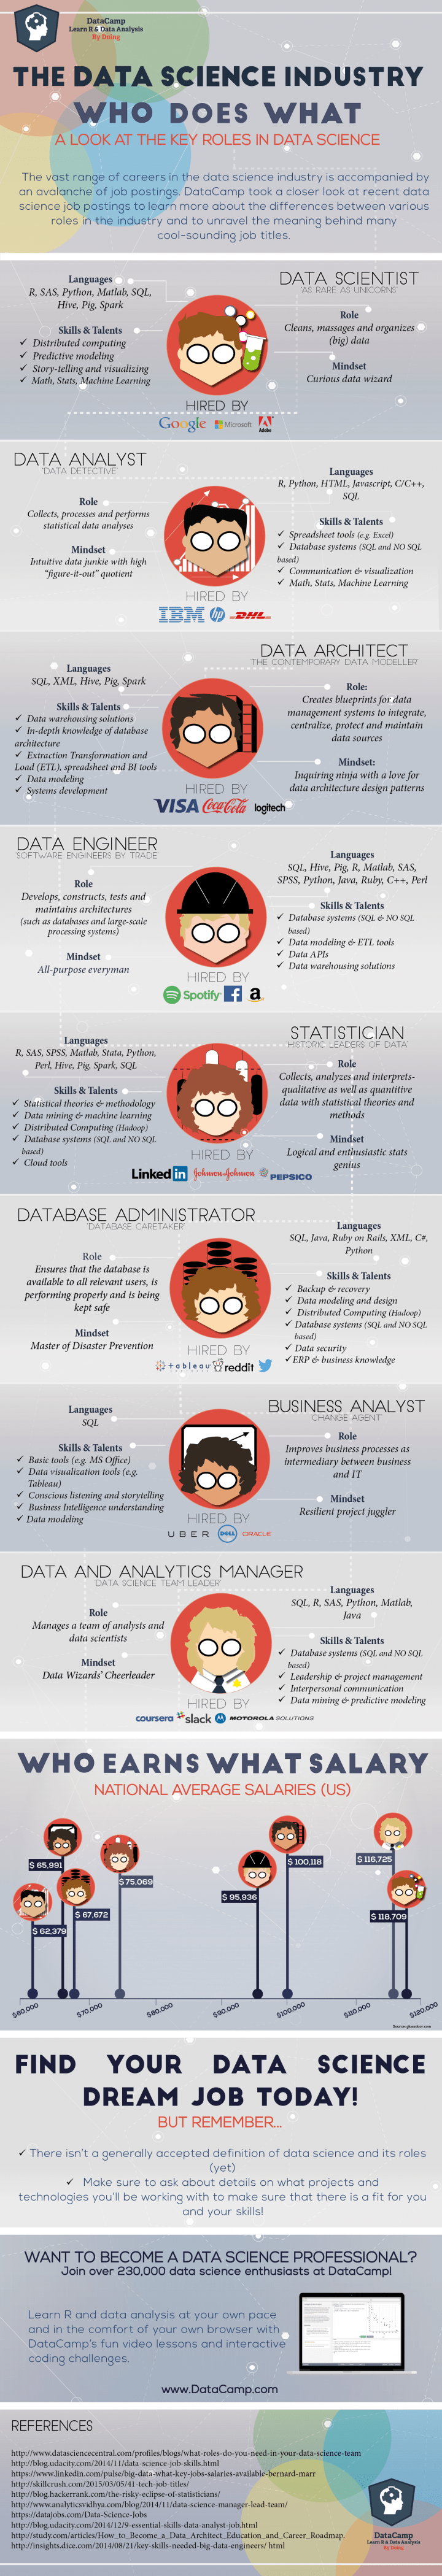 Data Scientist infographic